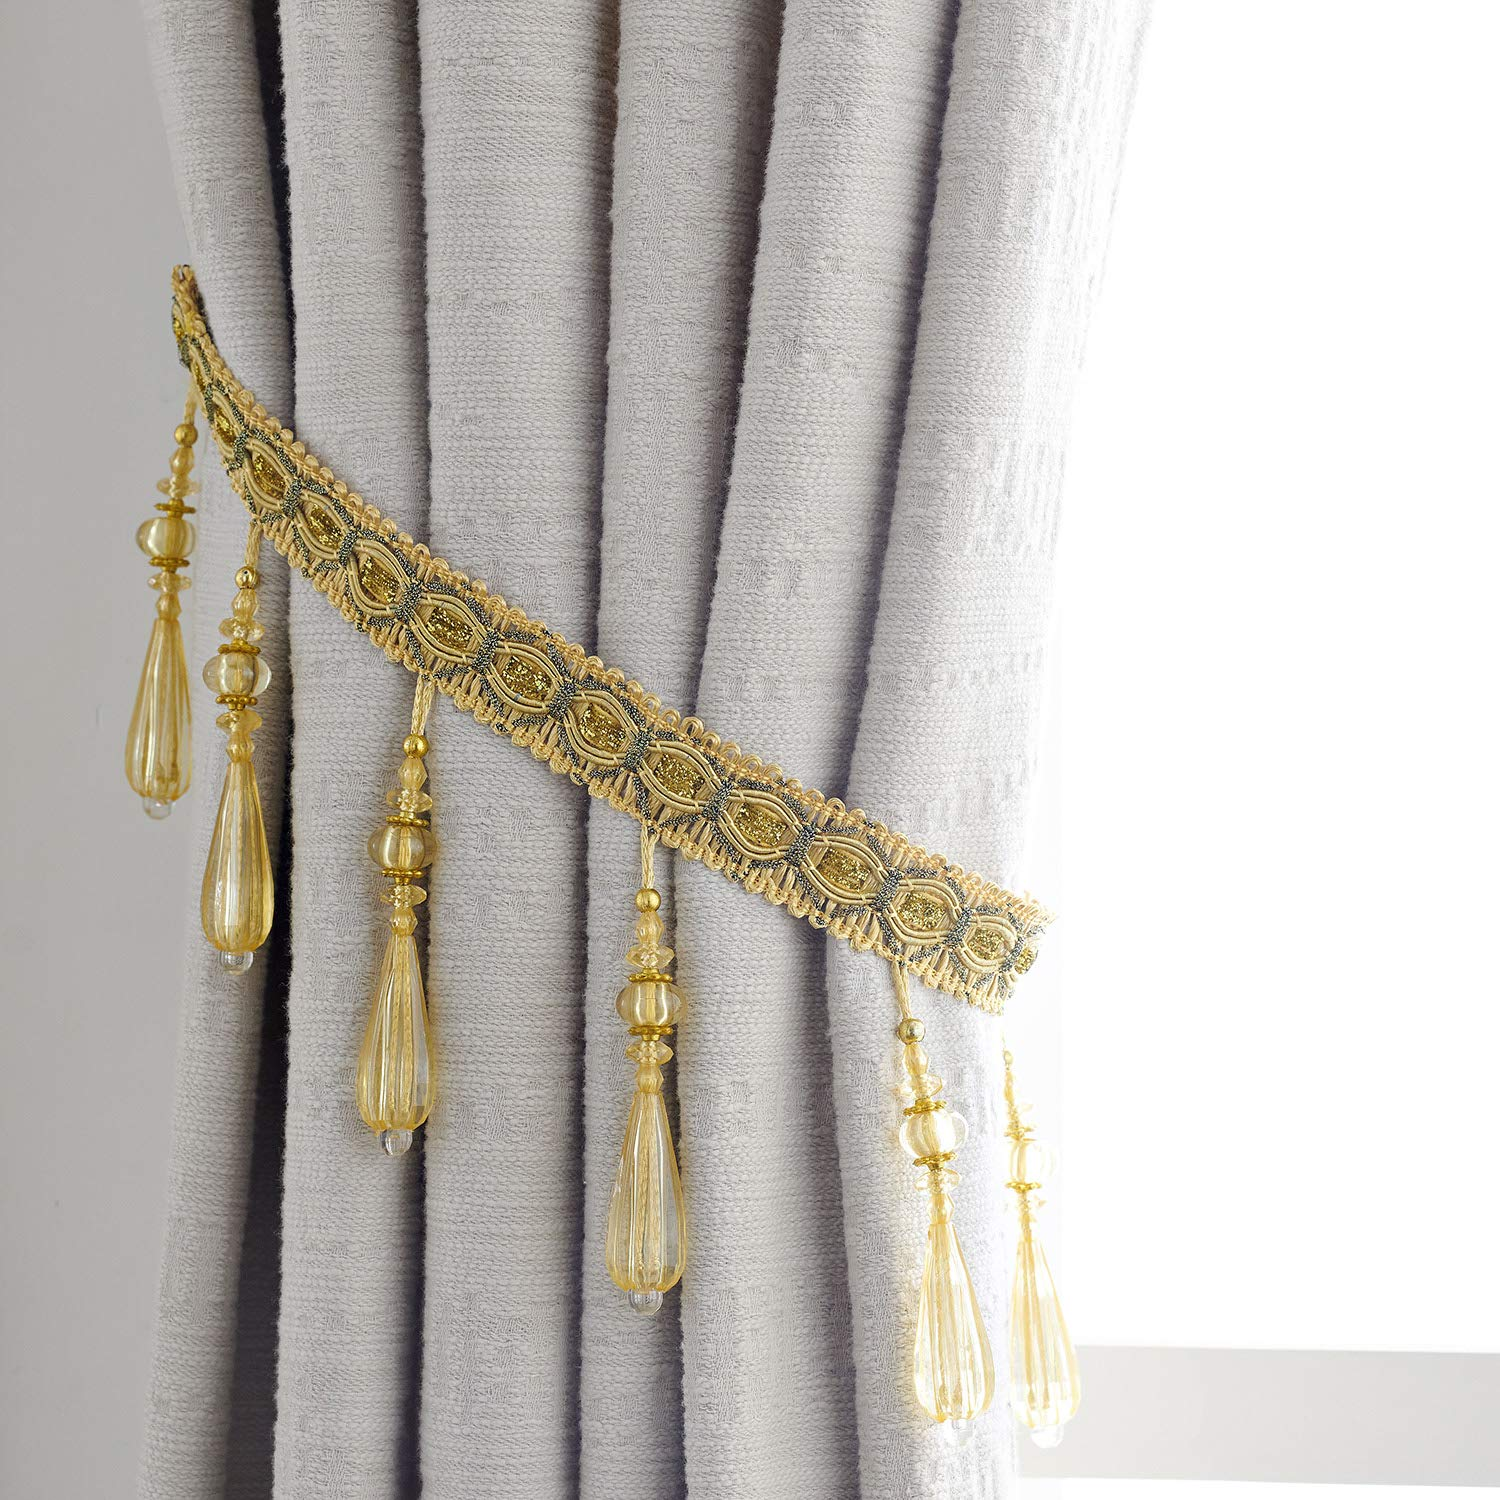 HSYLYM Curtain Holdbacks Curtain Holders Polyester Light-Weight Durable Tie Backs for Curtains,Set of 2,Coffee